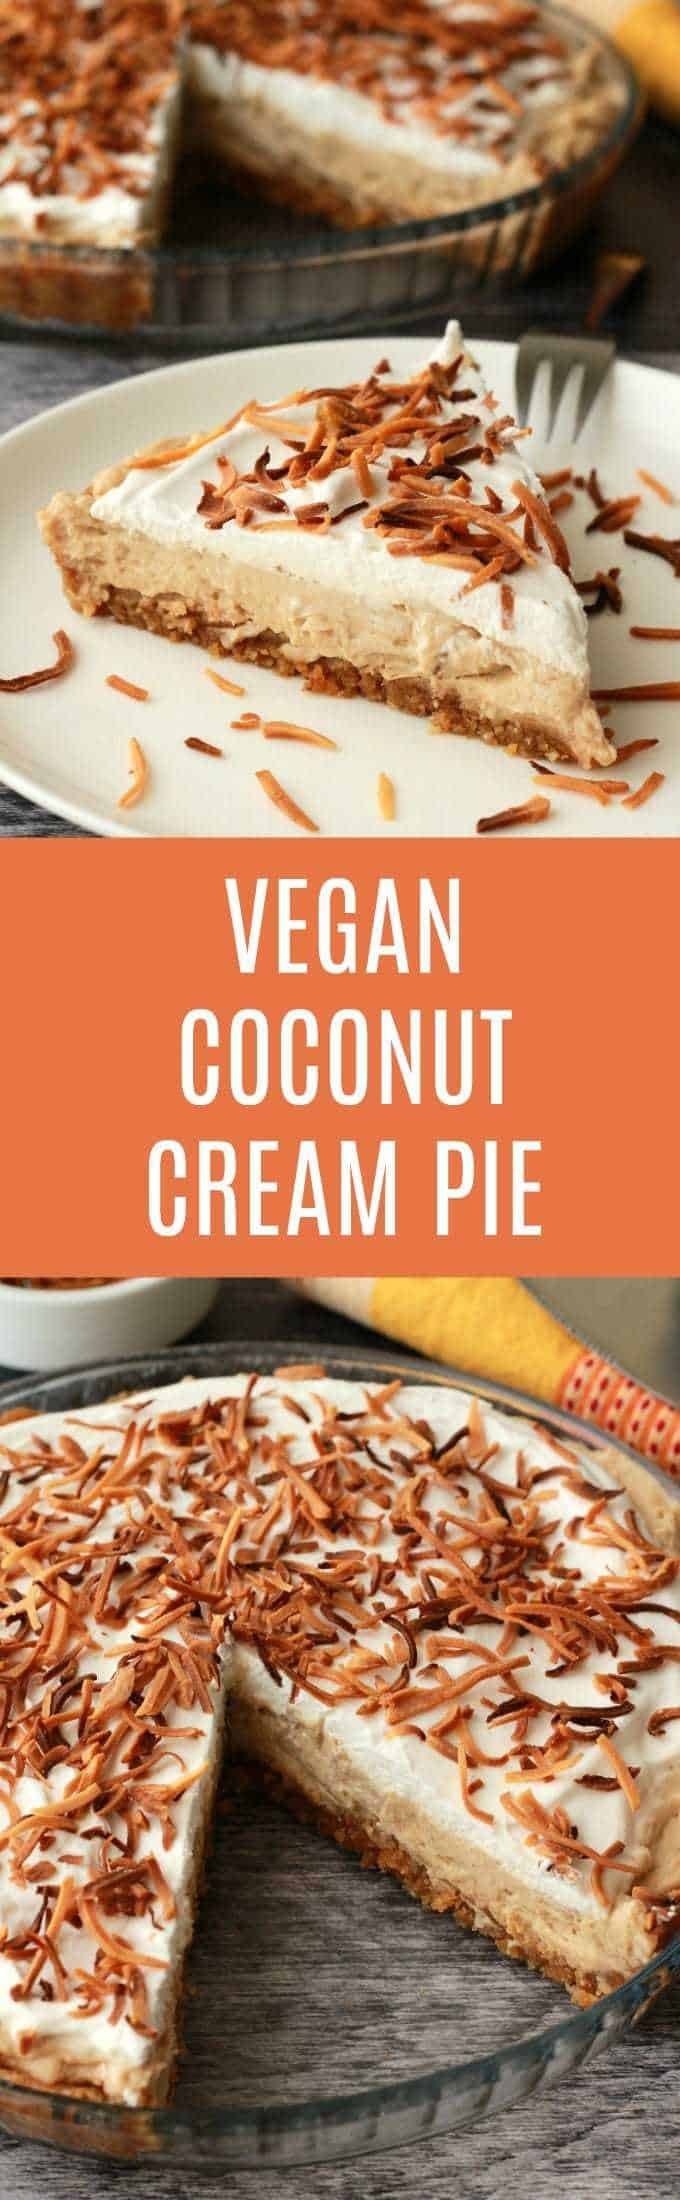 Vegan Coconut Cream Pie. 3-layers of deliciousness topped with toasted coconut flakes! Vegan and gluten-free! Vegan | Vegan Desserts | Vegan Recipes | Gluten-Free Vegan | Vegan Pie | lovingitvegan.com